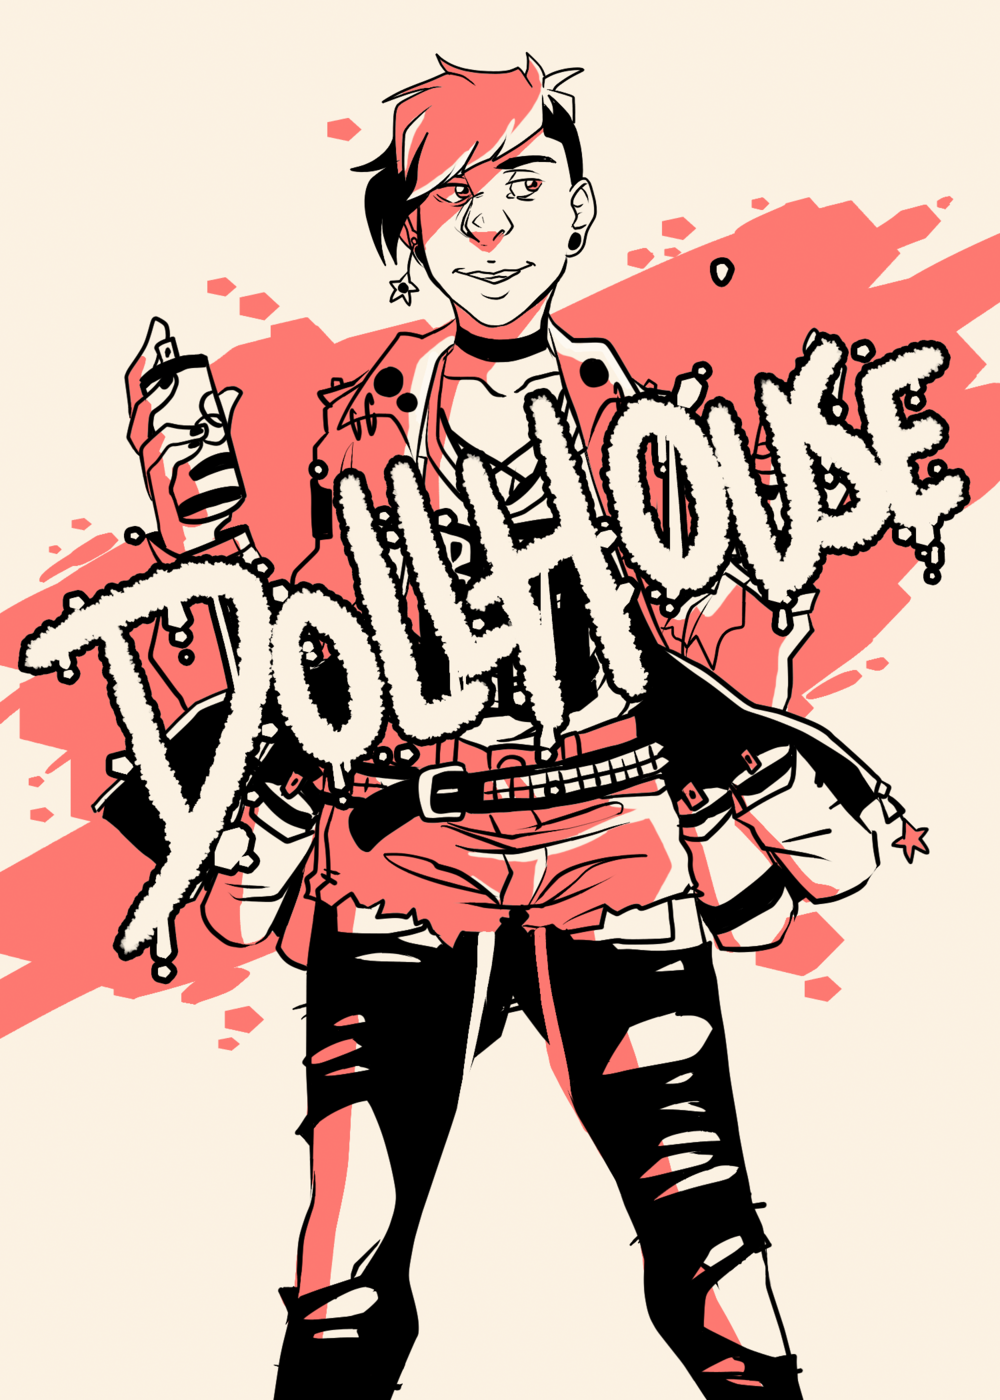 Dollhouse_Letterpress_Final_FINAL.png